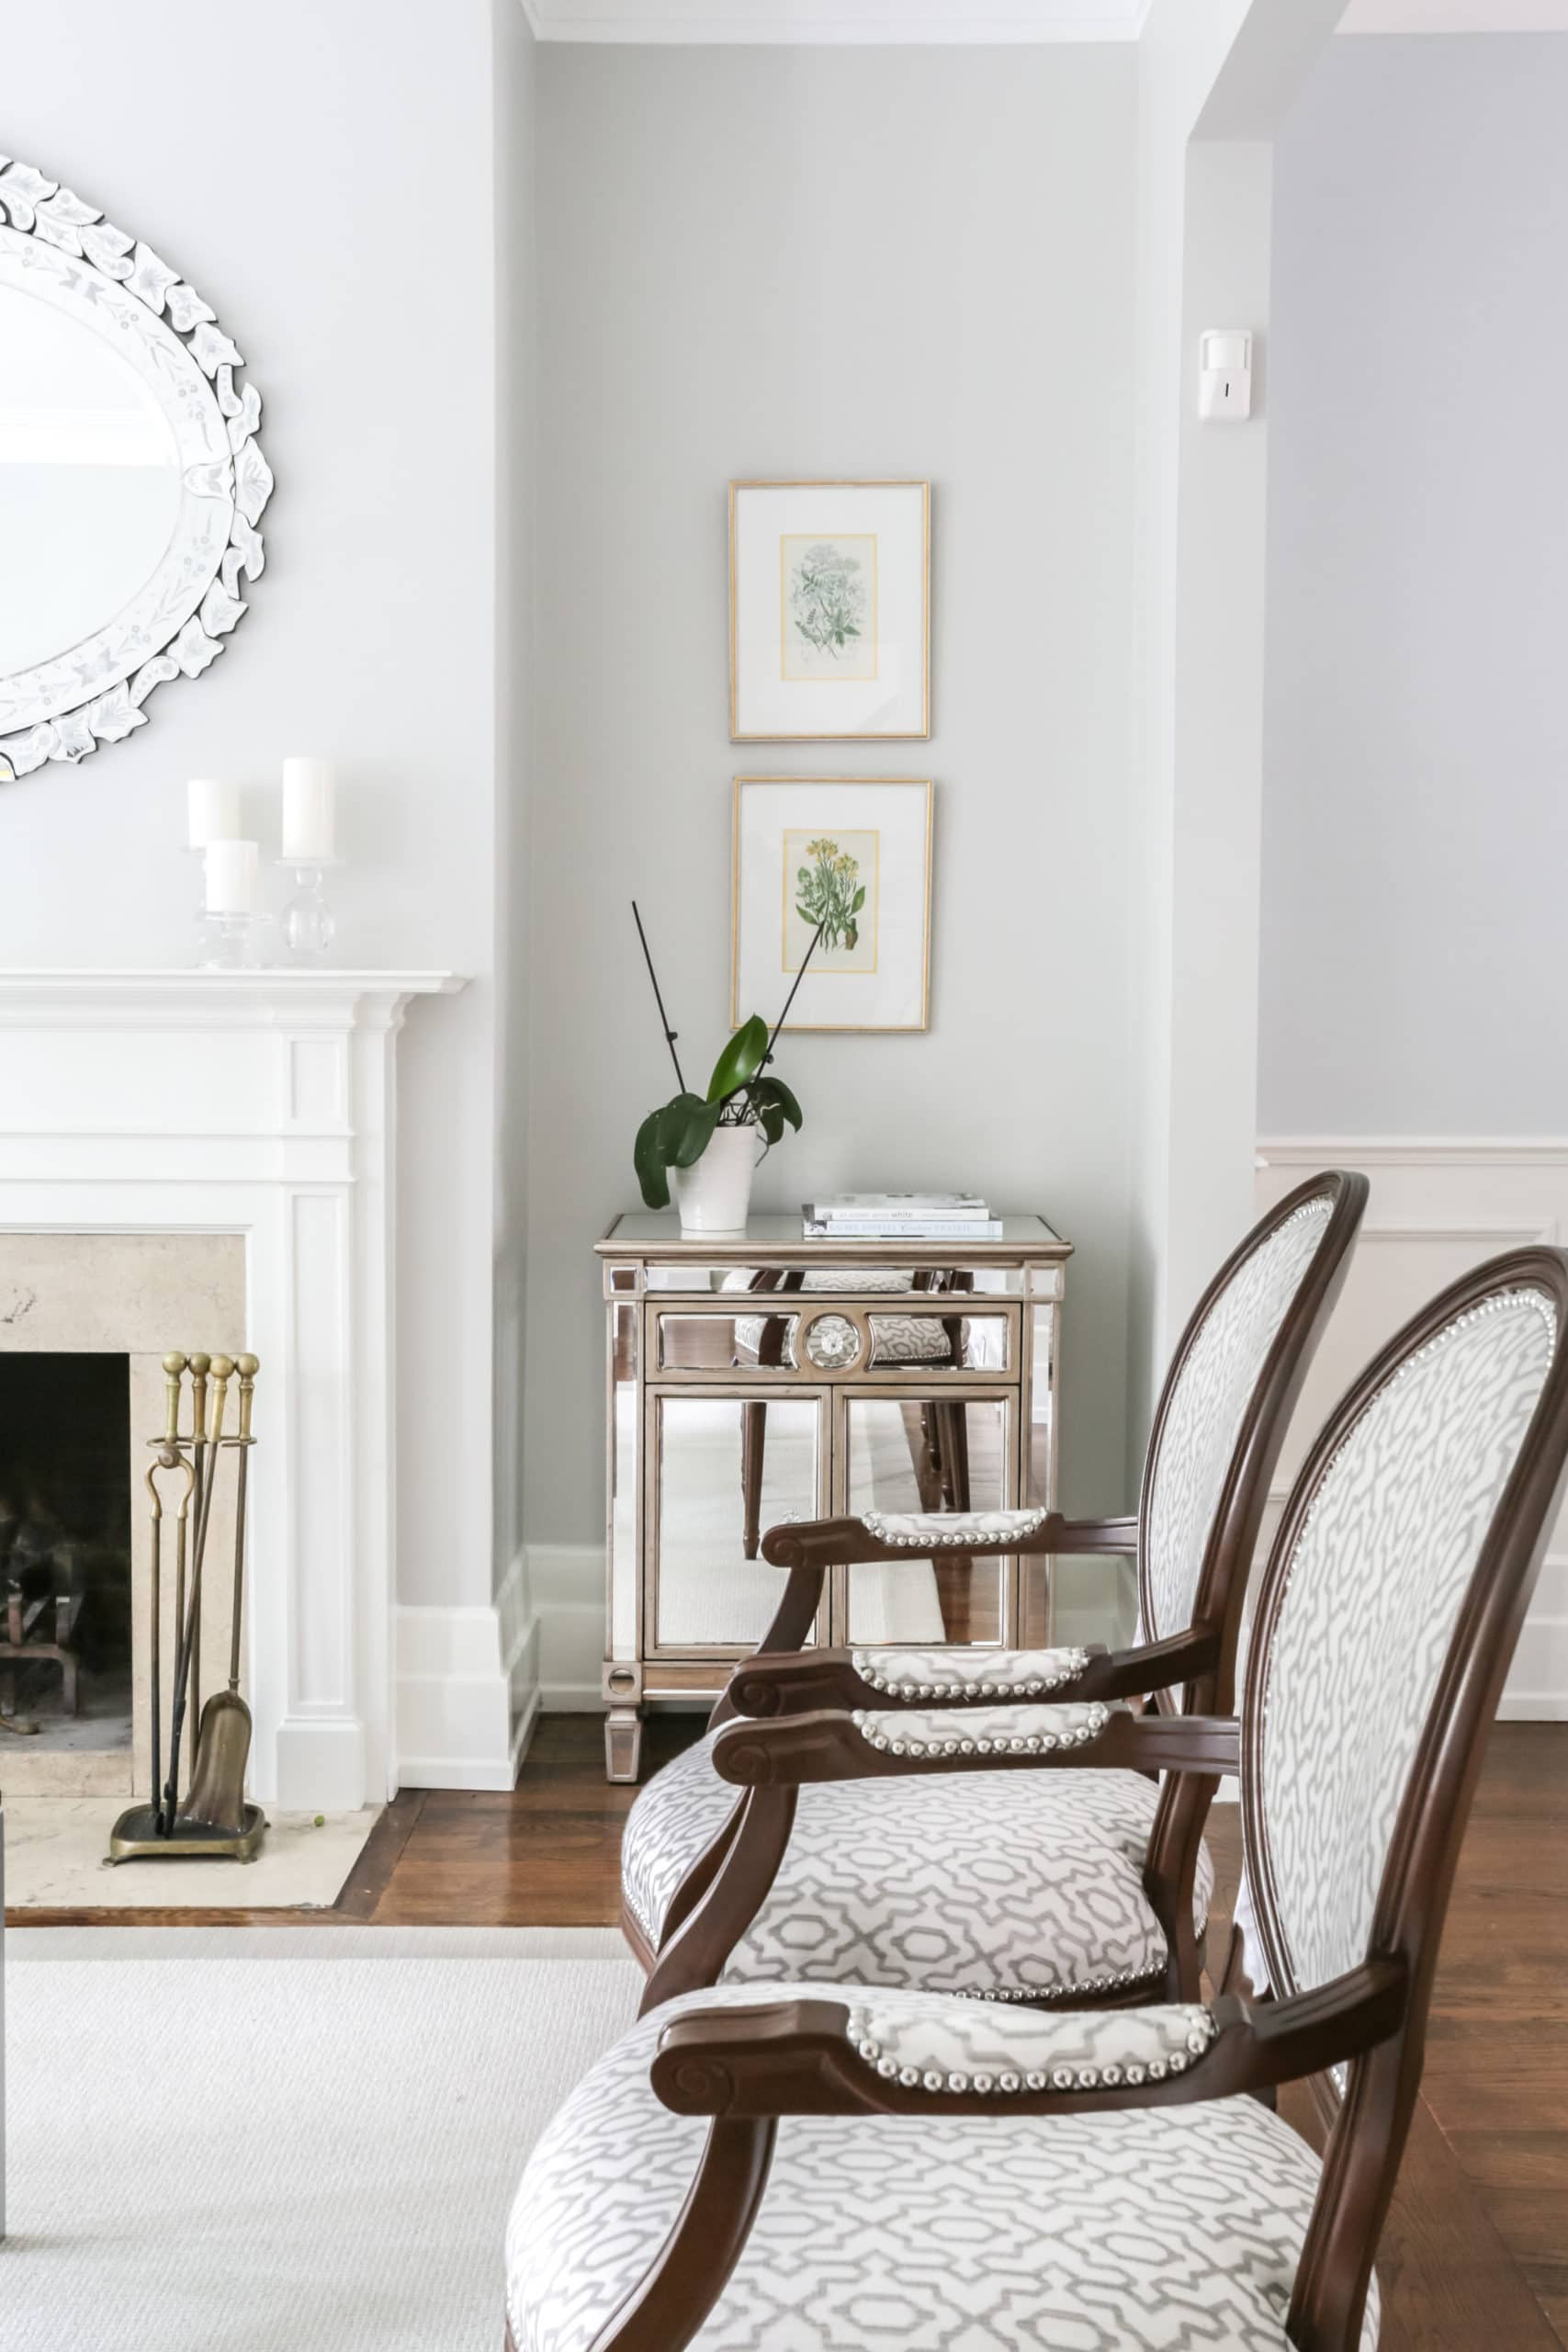 Two small beautiful chairs in a living room